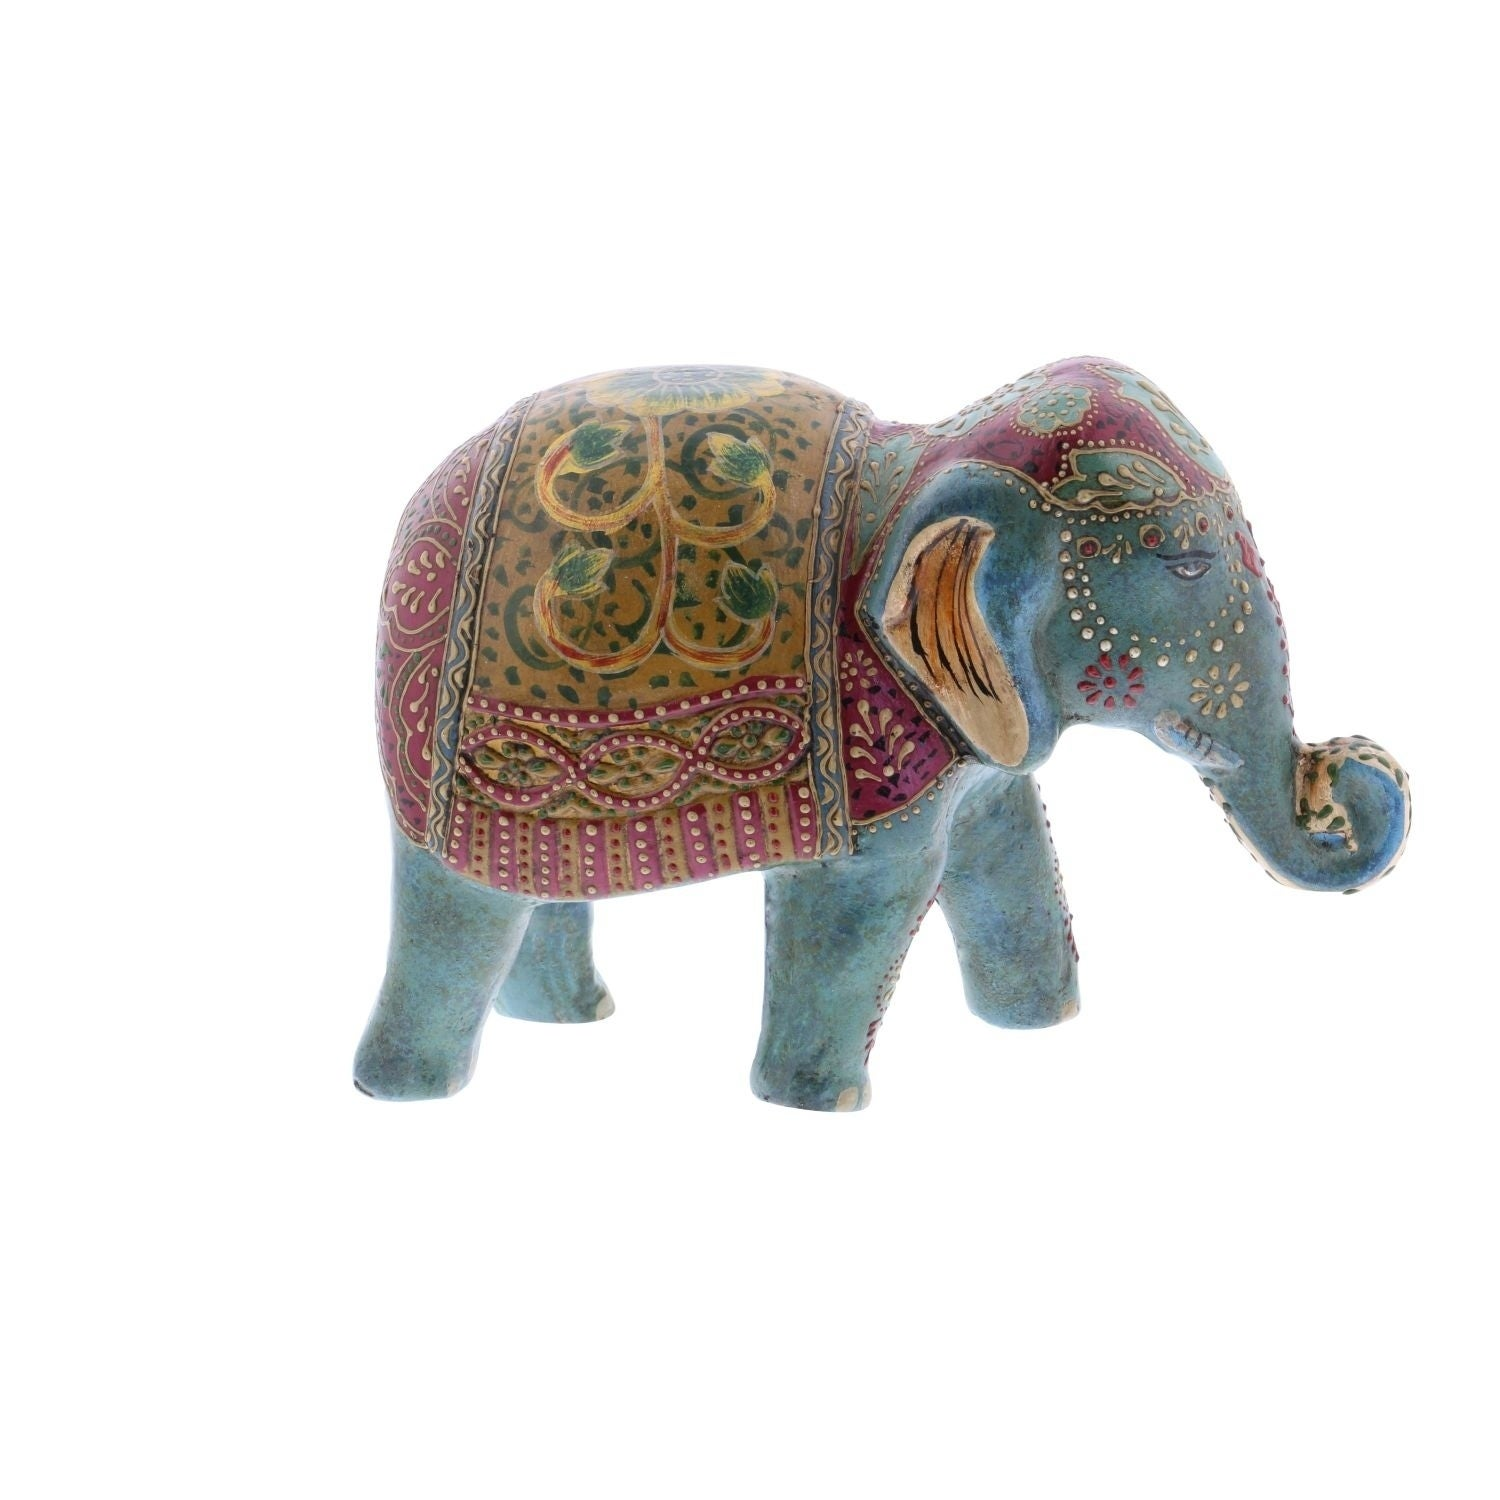 Studio 350 Paper Mache Elephant 9 inches wide, 6 inches h...